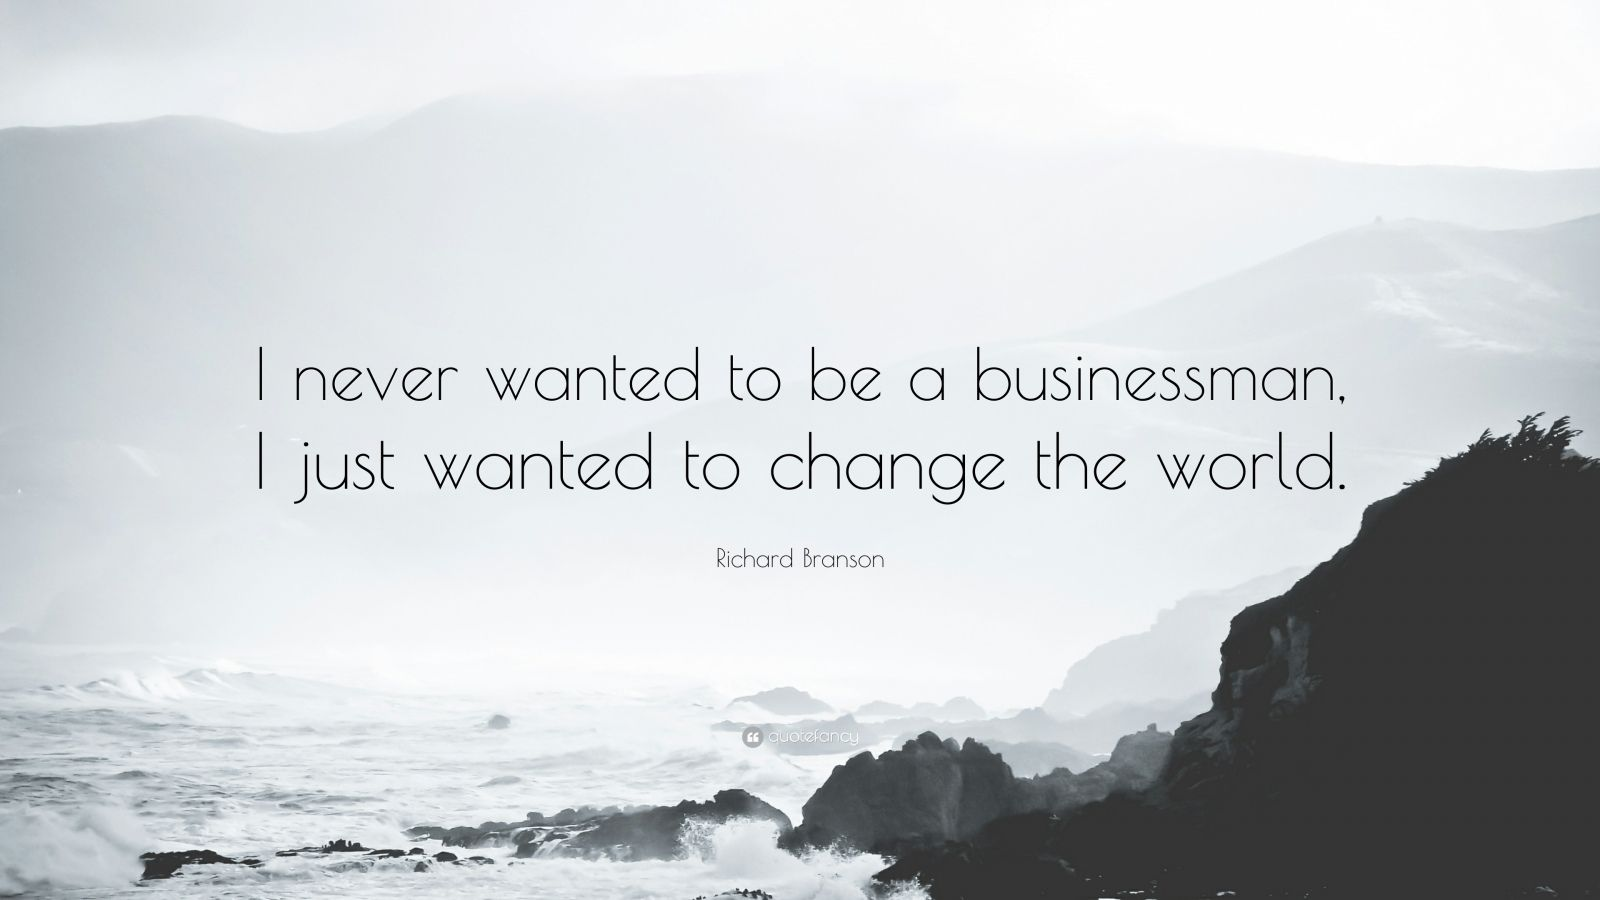 """Richard Branson Quote: """"I never wanted to be a businessman, I just wanted to change the world."""""""